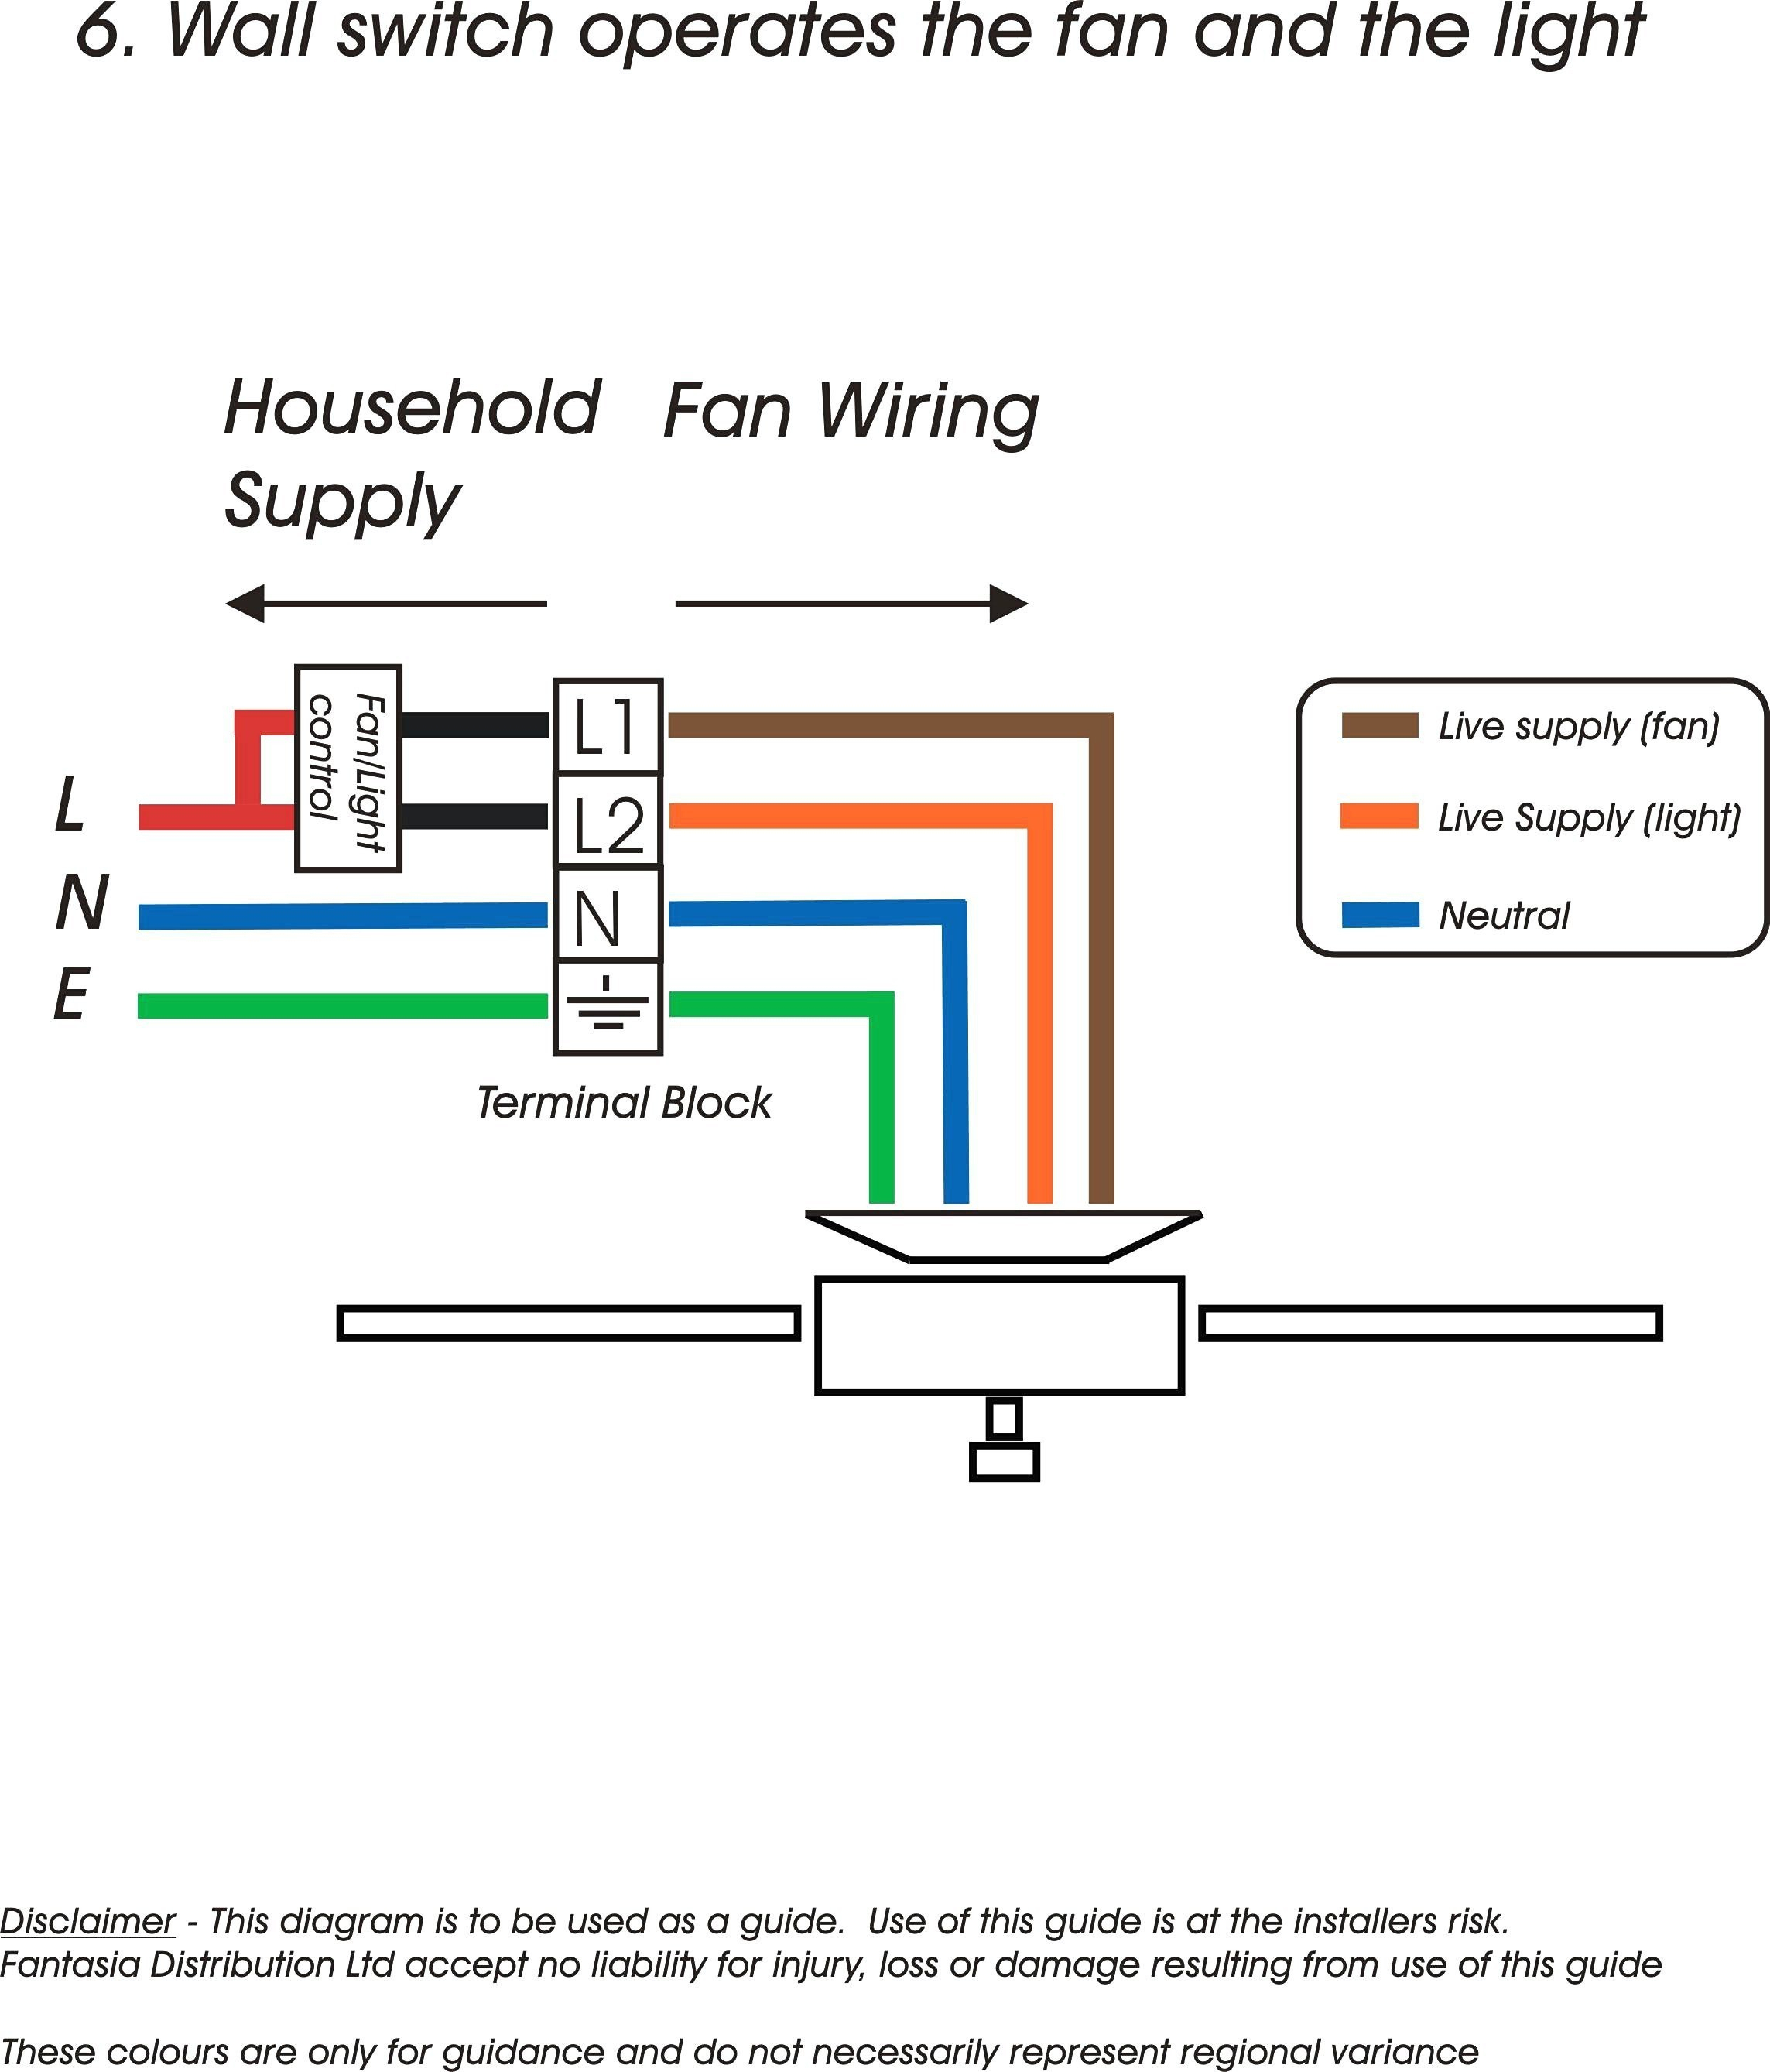 Led Tube Light Wiring Diagram Sample - Fluorescent Light Wiring Diagram